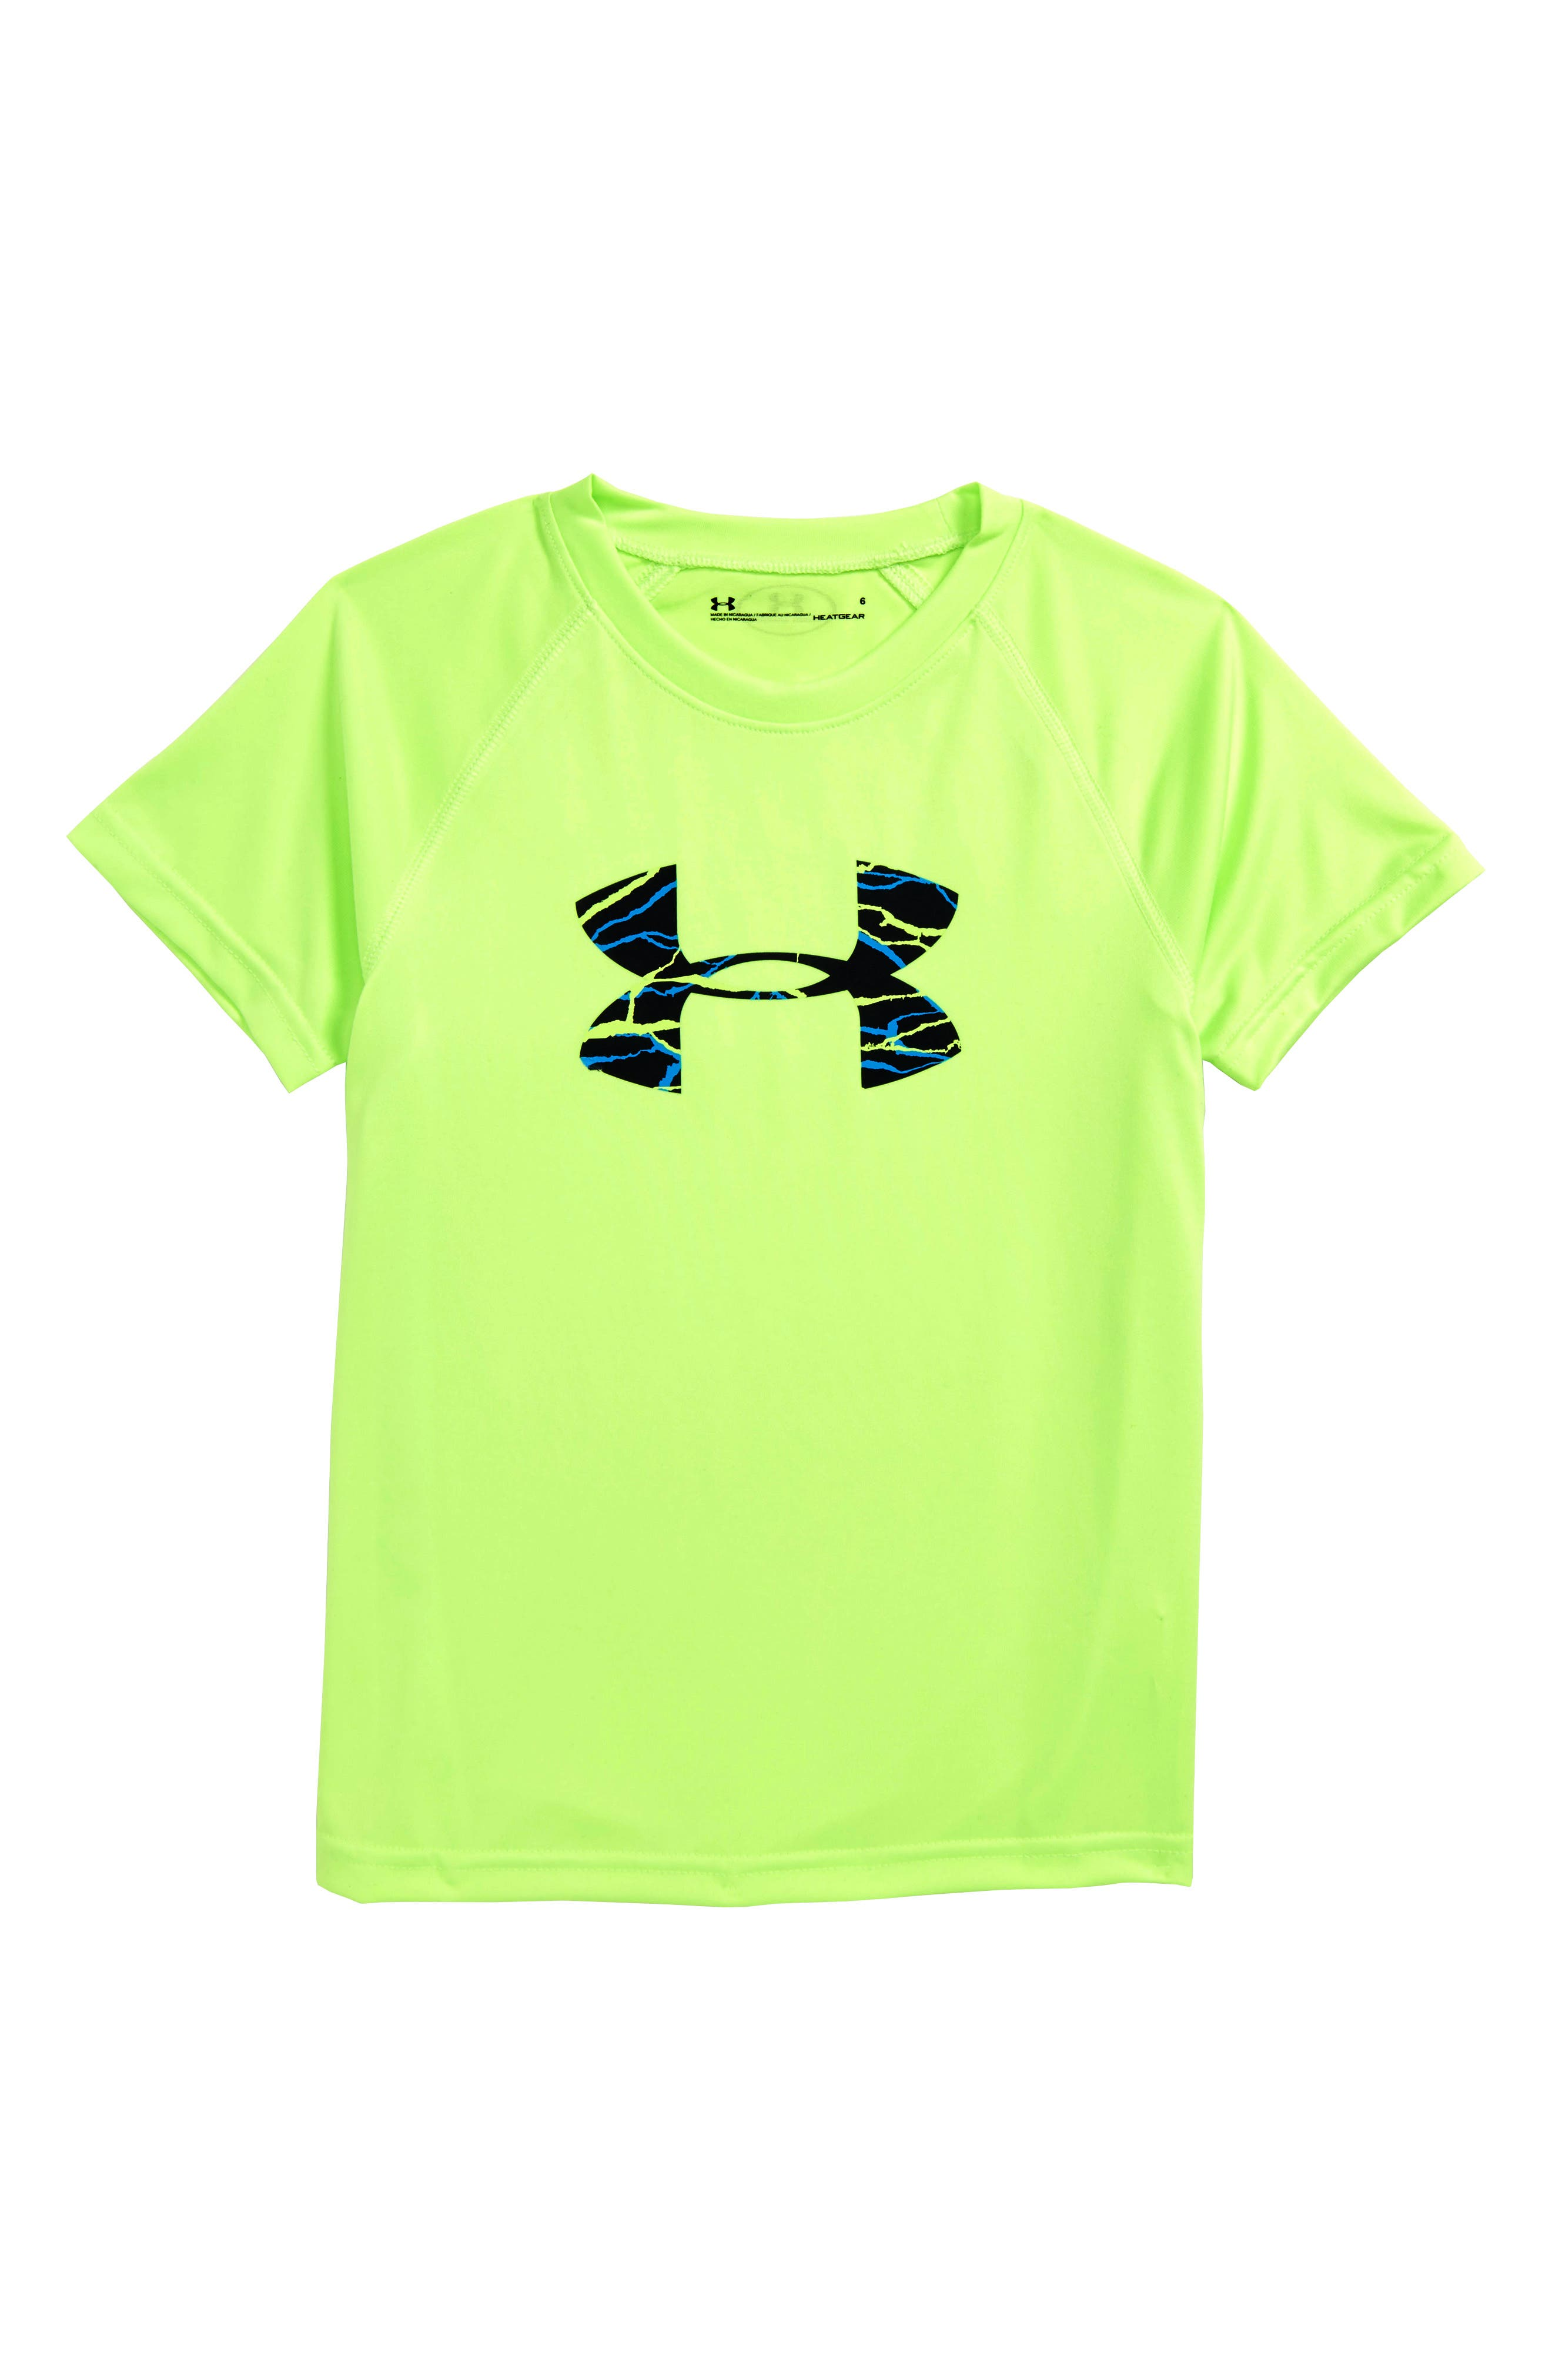 Main Image - Under Armour Voltage Graphic HeatGear® T-Shirt (Toddler Boys & Little Boys)